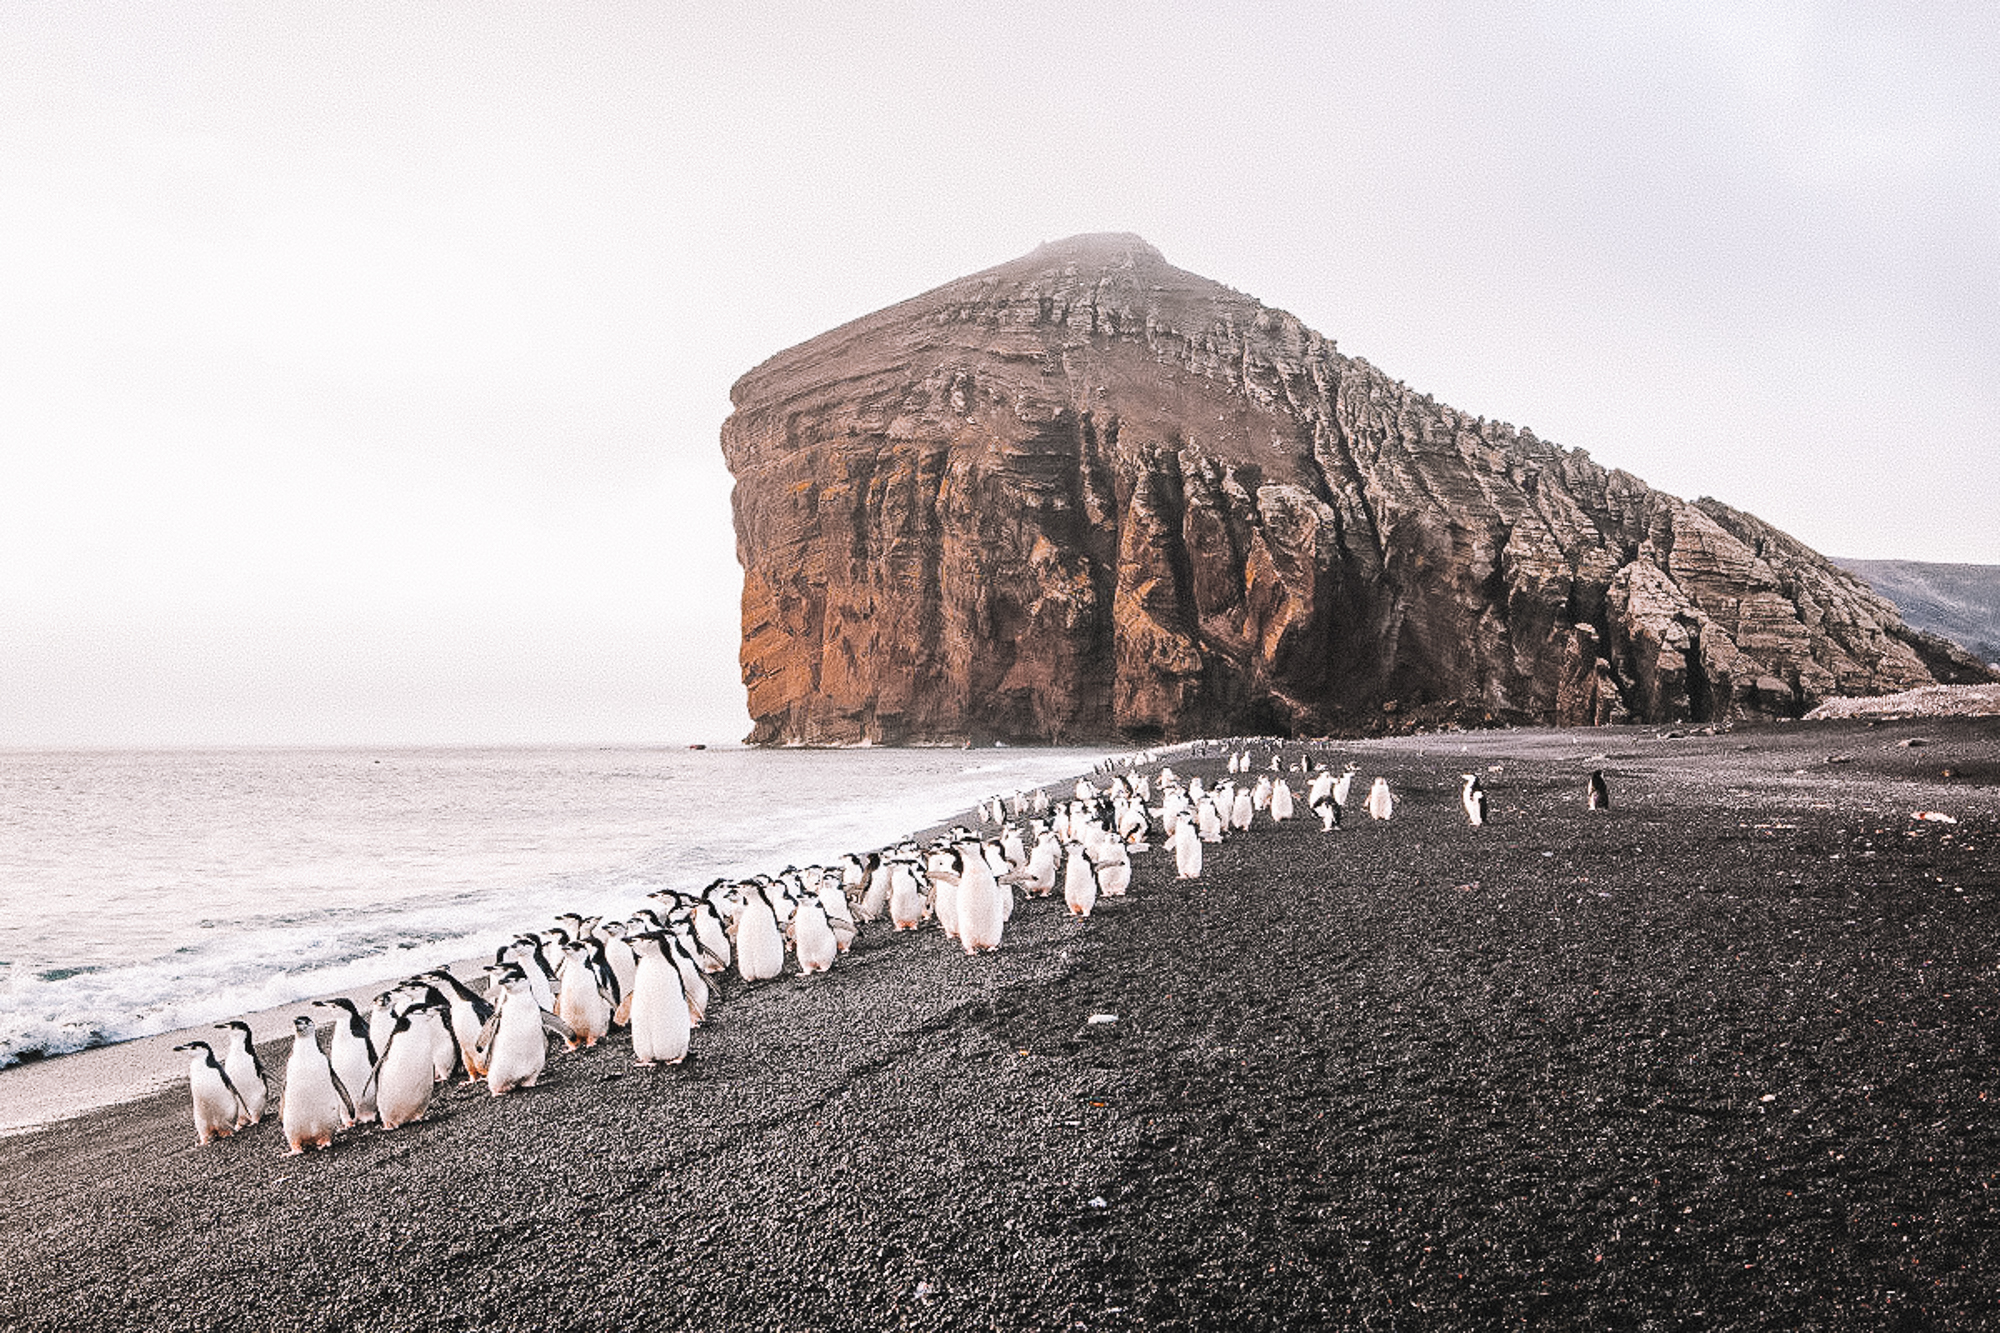 south georgia - The dramatic setting of South Georgia boasts a rich wildlife that has attracted some of the most famous Antarctic explorers across centuries.